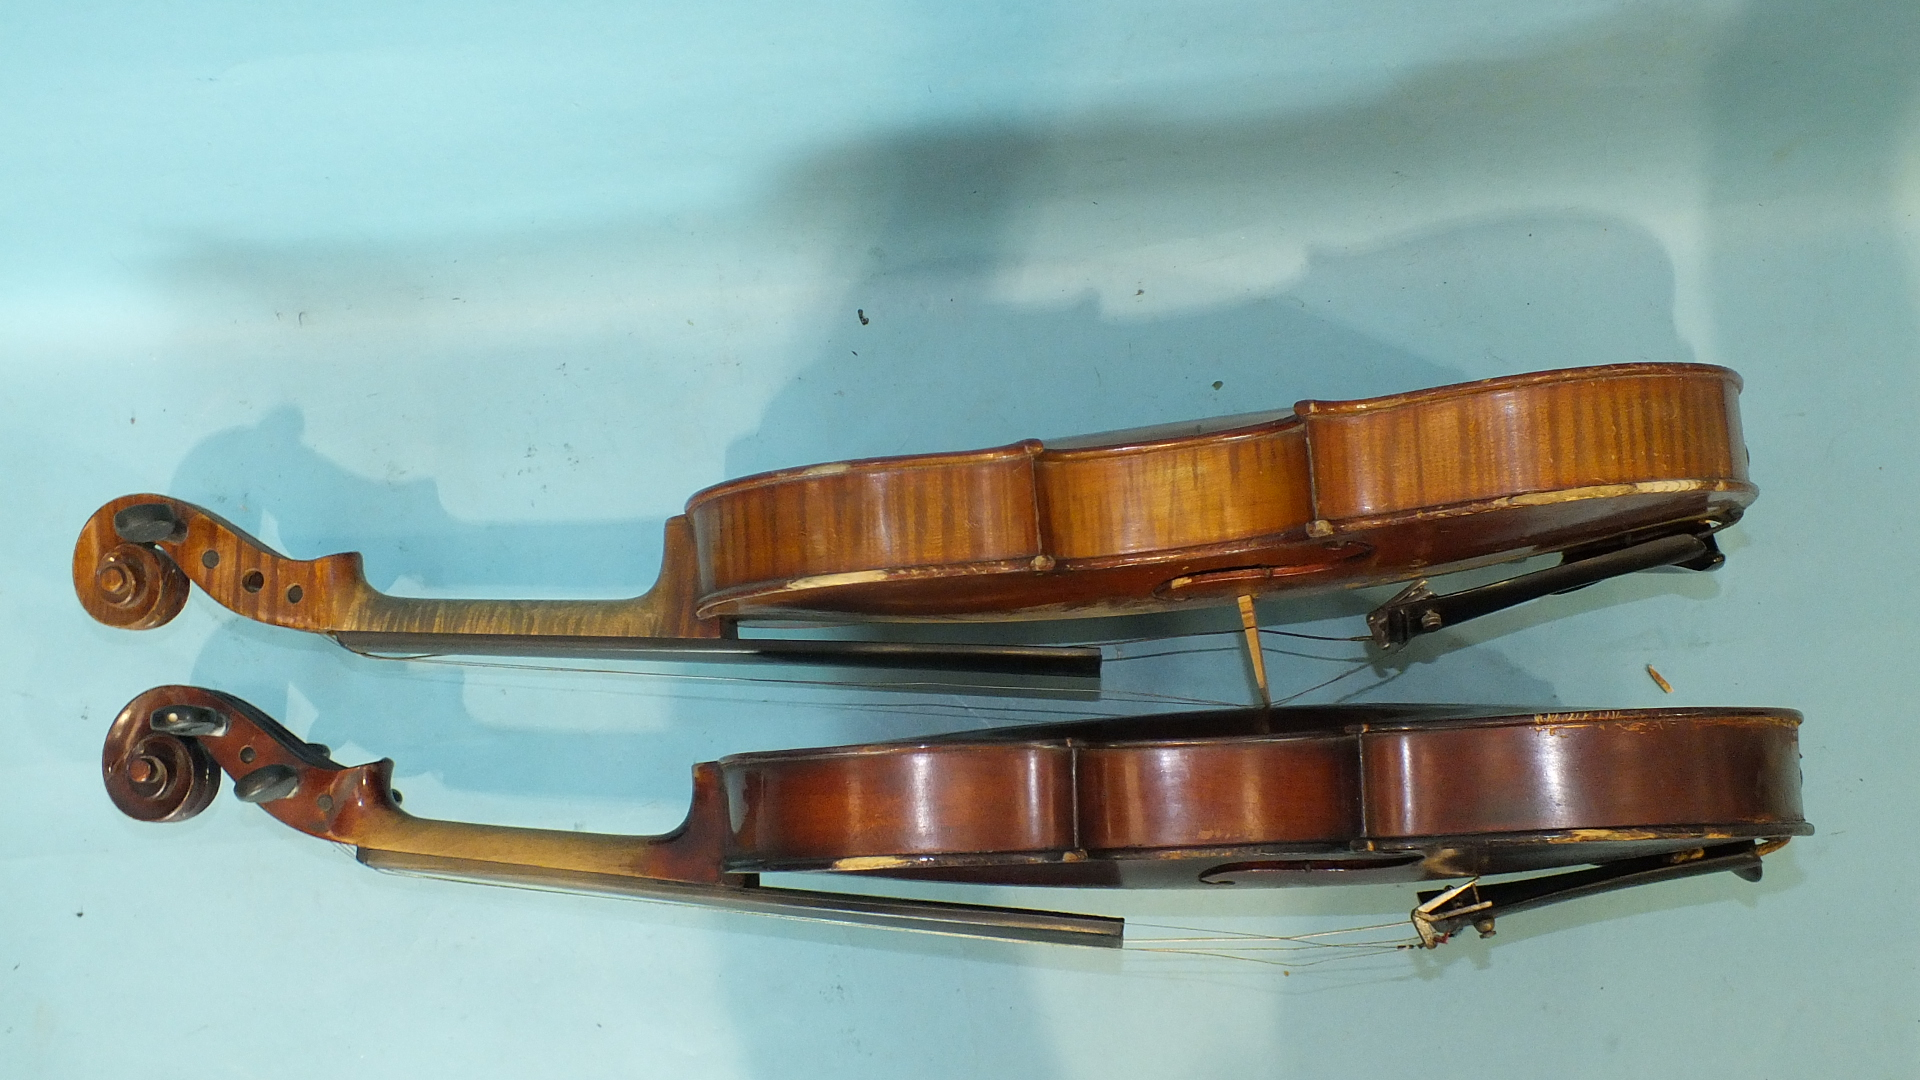 Lot 505 - A Celebre Vosgien violin with one-piece back, 35.5cm, with bow, in case and another full-size violin